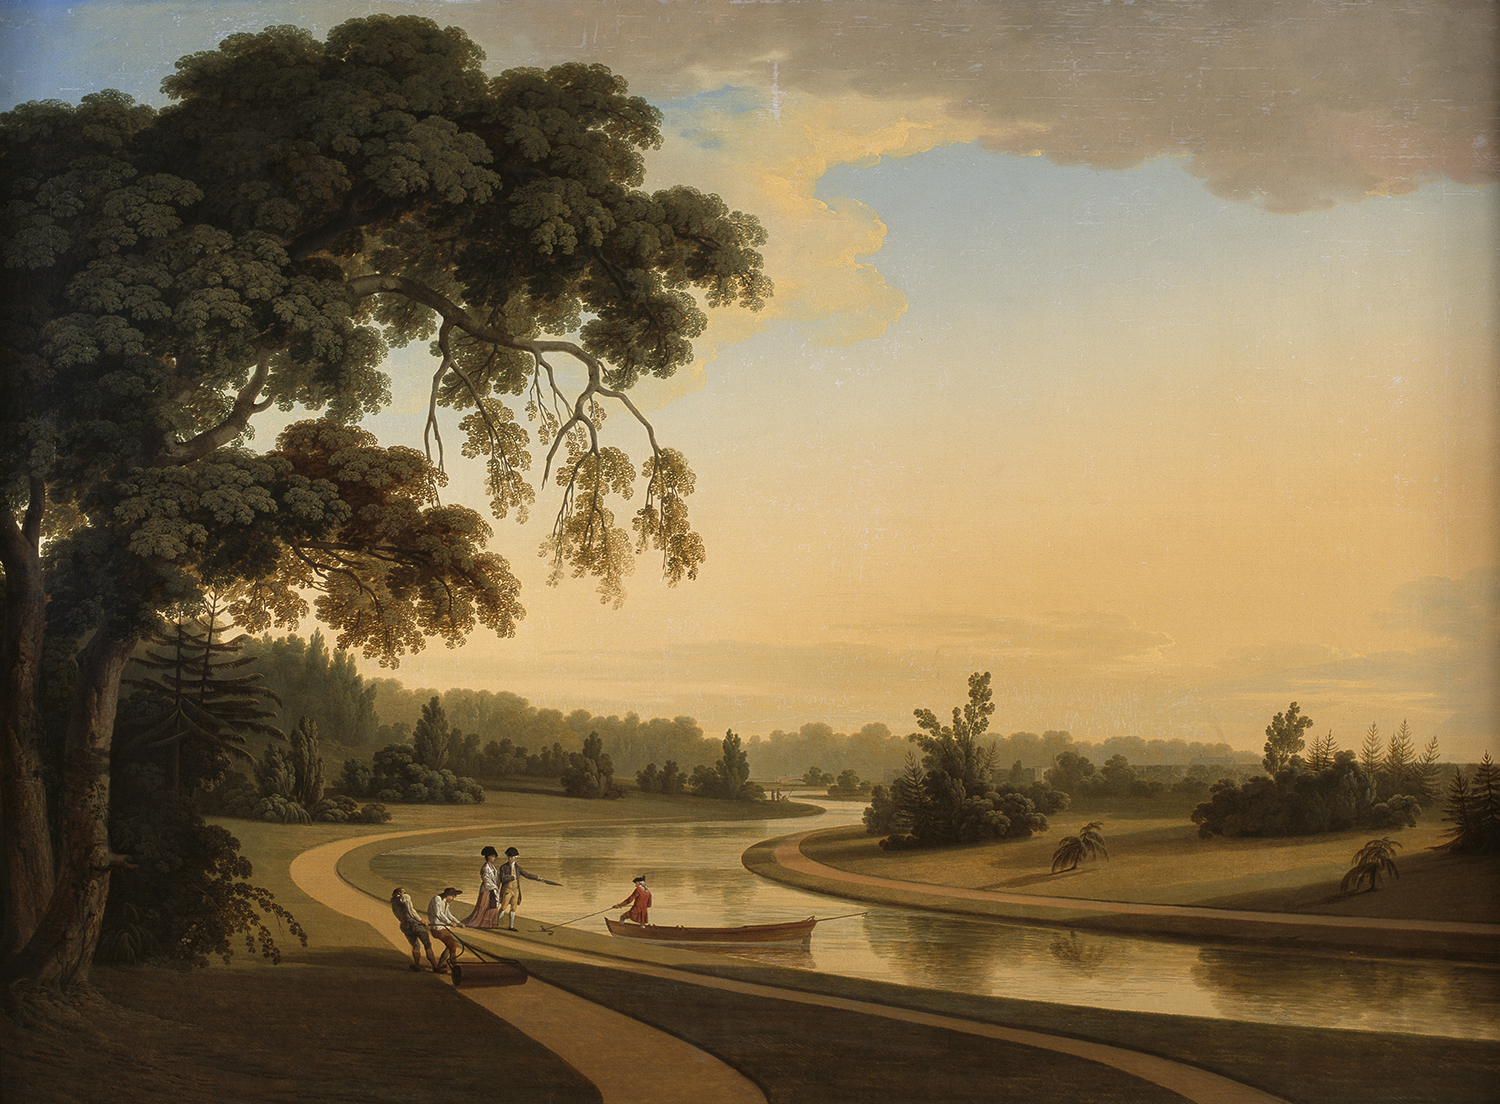 The Sheet of Water at Carton, County Kildare with the Duke and Duchess of Leinster and gardeners rolling a serpentine path, 1775 – 76.  Private Collection. Thomas Roberts. Carton was the birthplace of  patriot Lord Edward Fitzgerald, son of the first Duke and Duchess of Leinster.